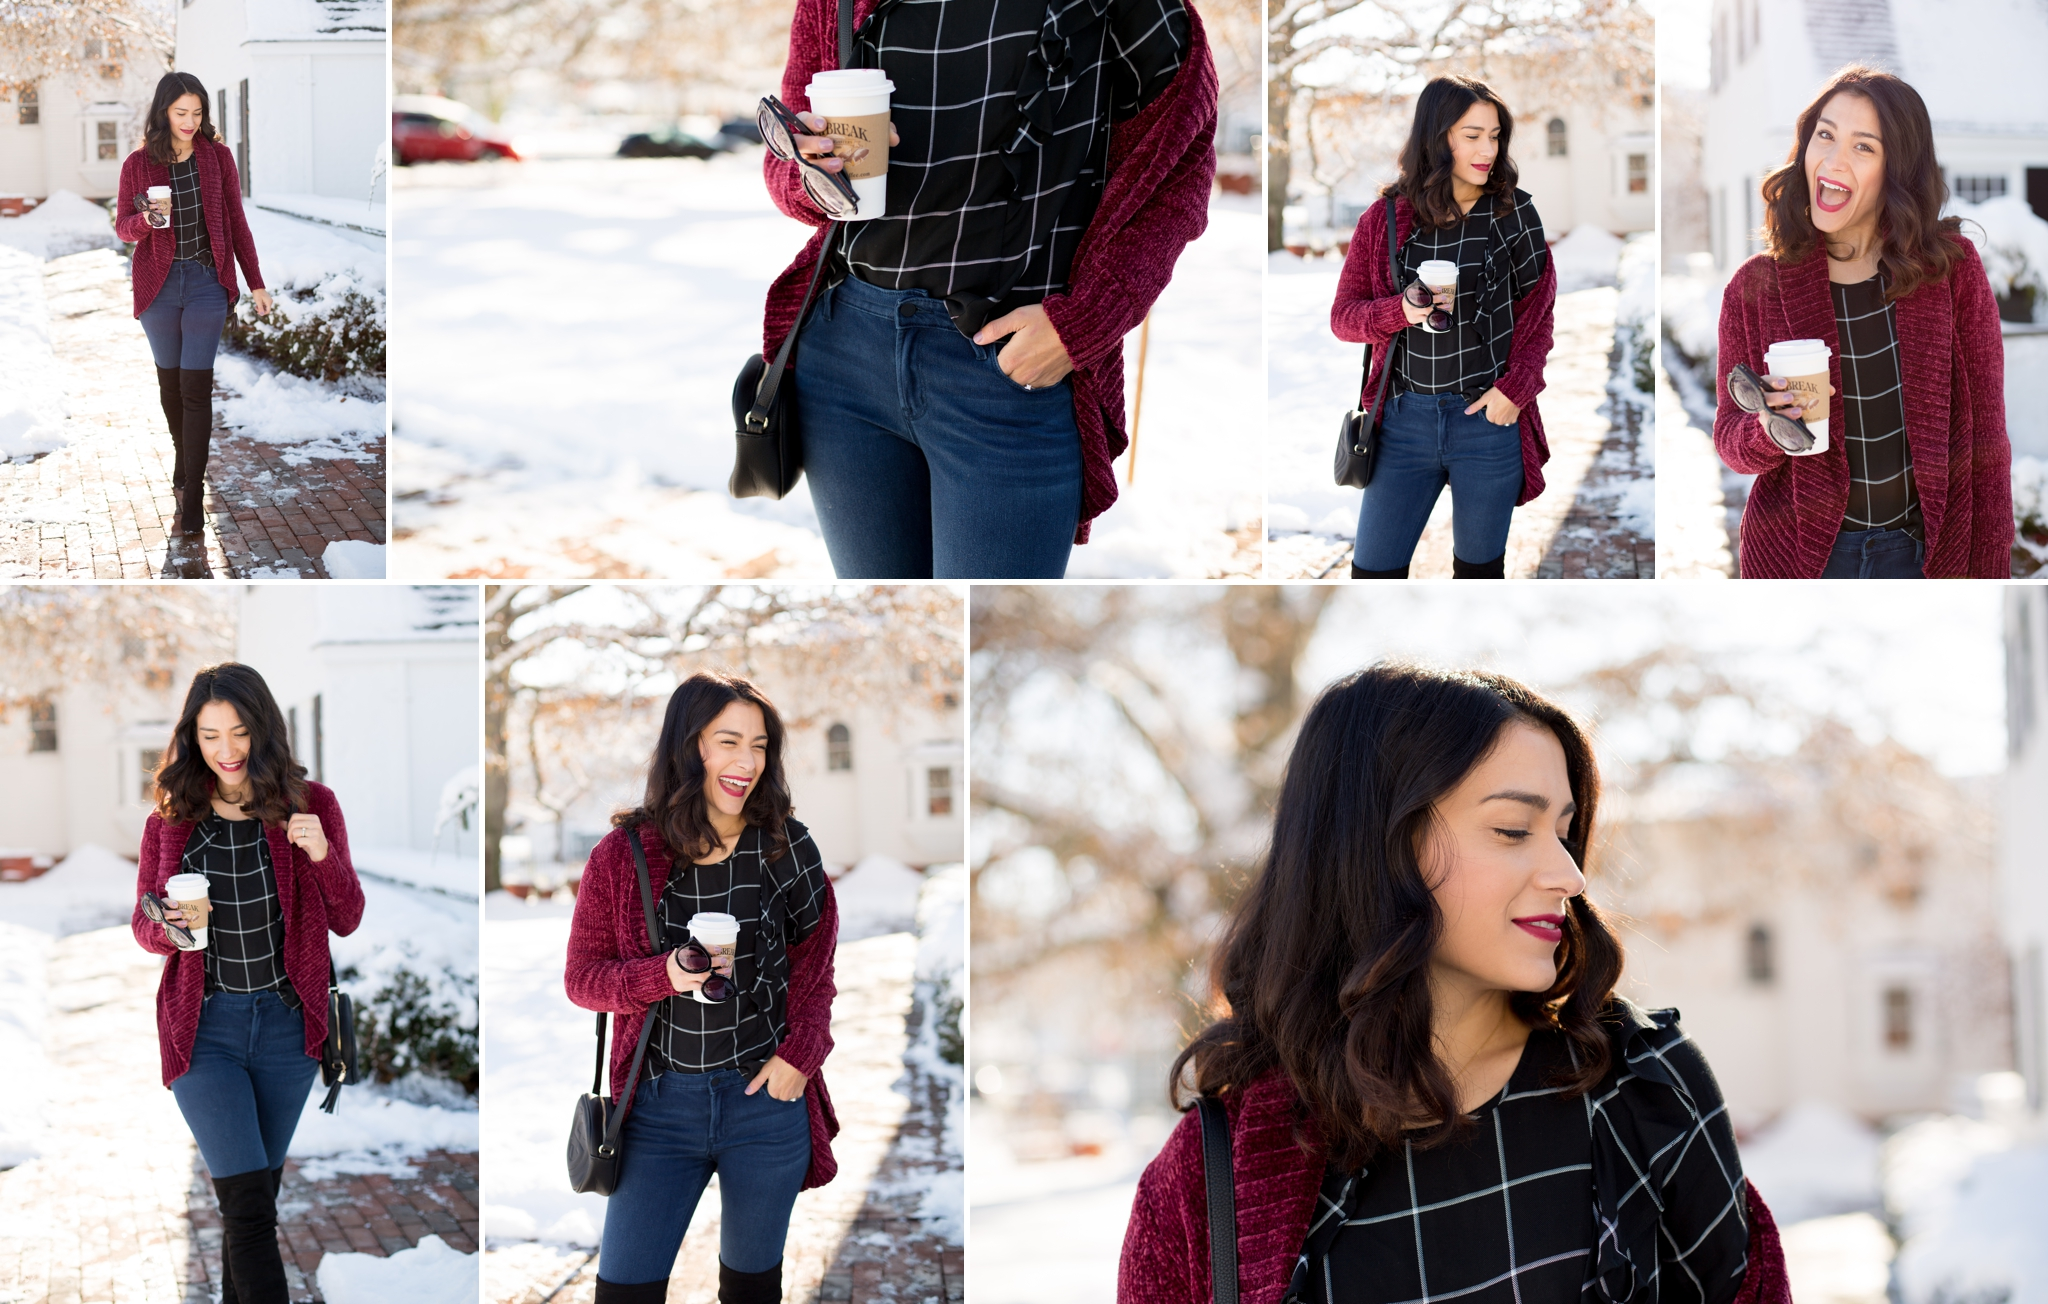 Snowy photos, winter wonderland, blog photography, pictures in the snow